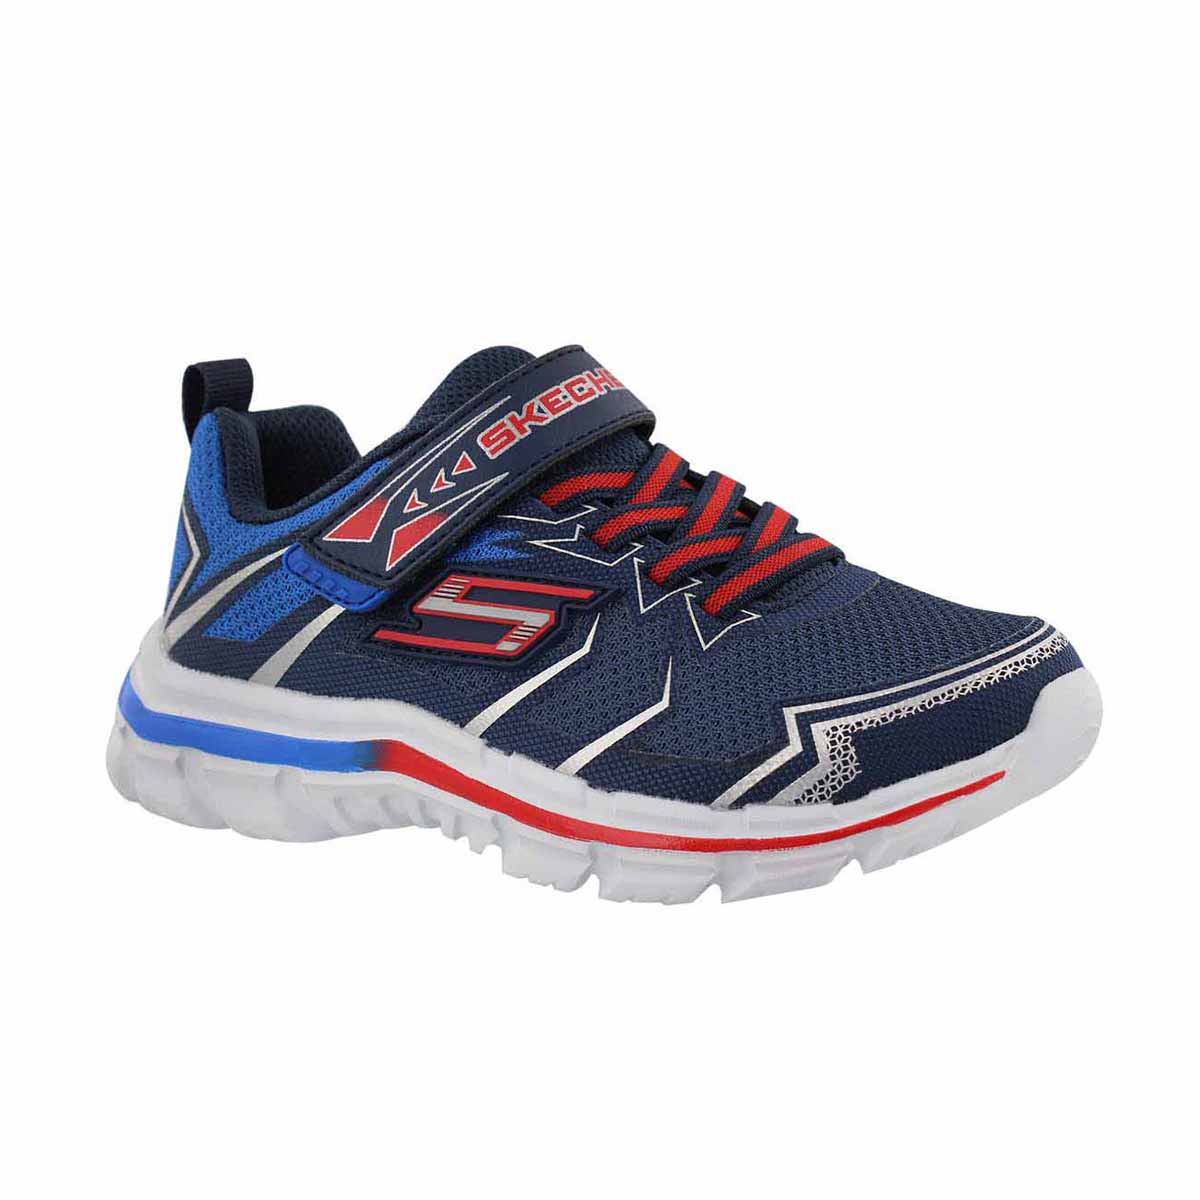 Boys' NITRATE ION BLAST navy/ red sneakers